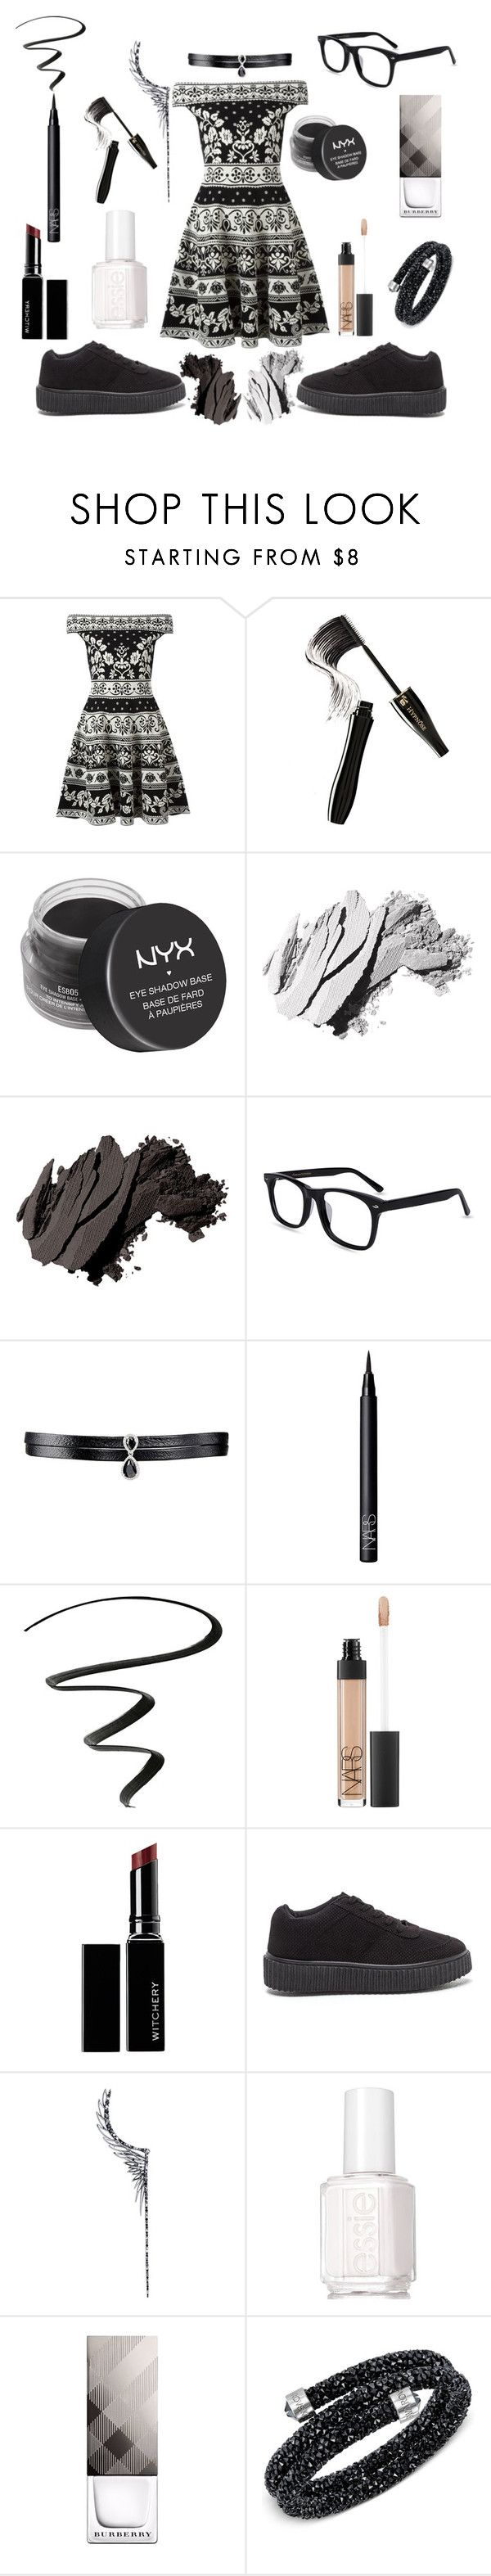 """""""Black and white. K."""" by lasagneislife ❤ liked on Polyvore featuring Alexander McQueen, Lancôme, Forever 21, Bobbi Brown Cosmetics, Fallon, NARS Cosmetics, NYX, Witchery, Cristina Ortiz and Essie"""